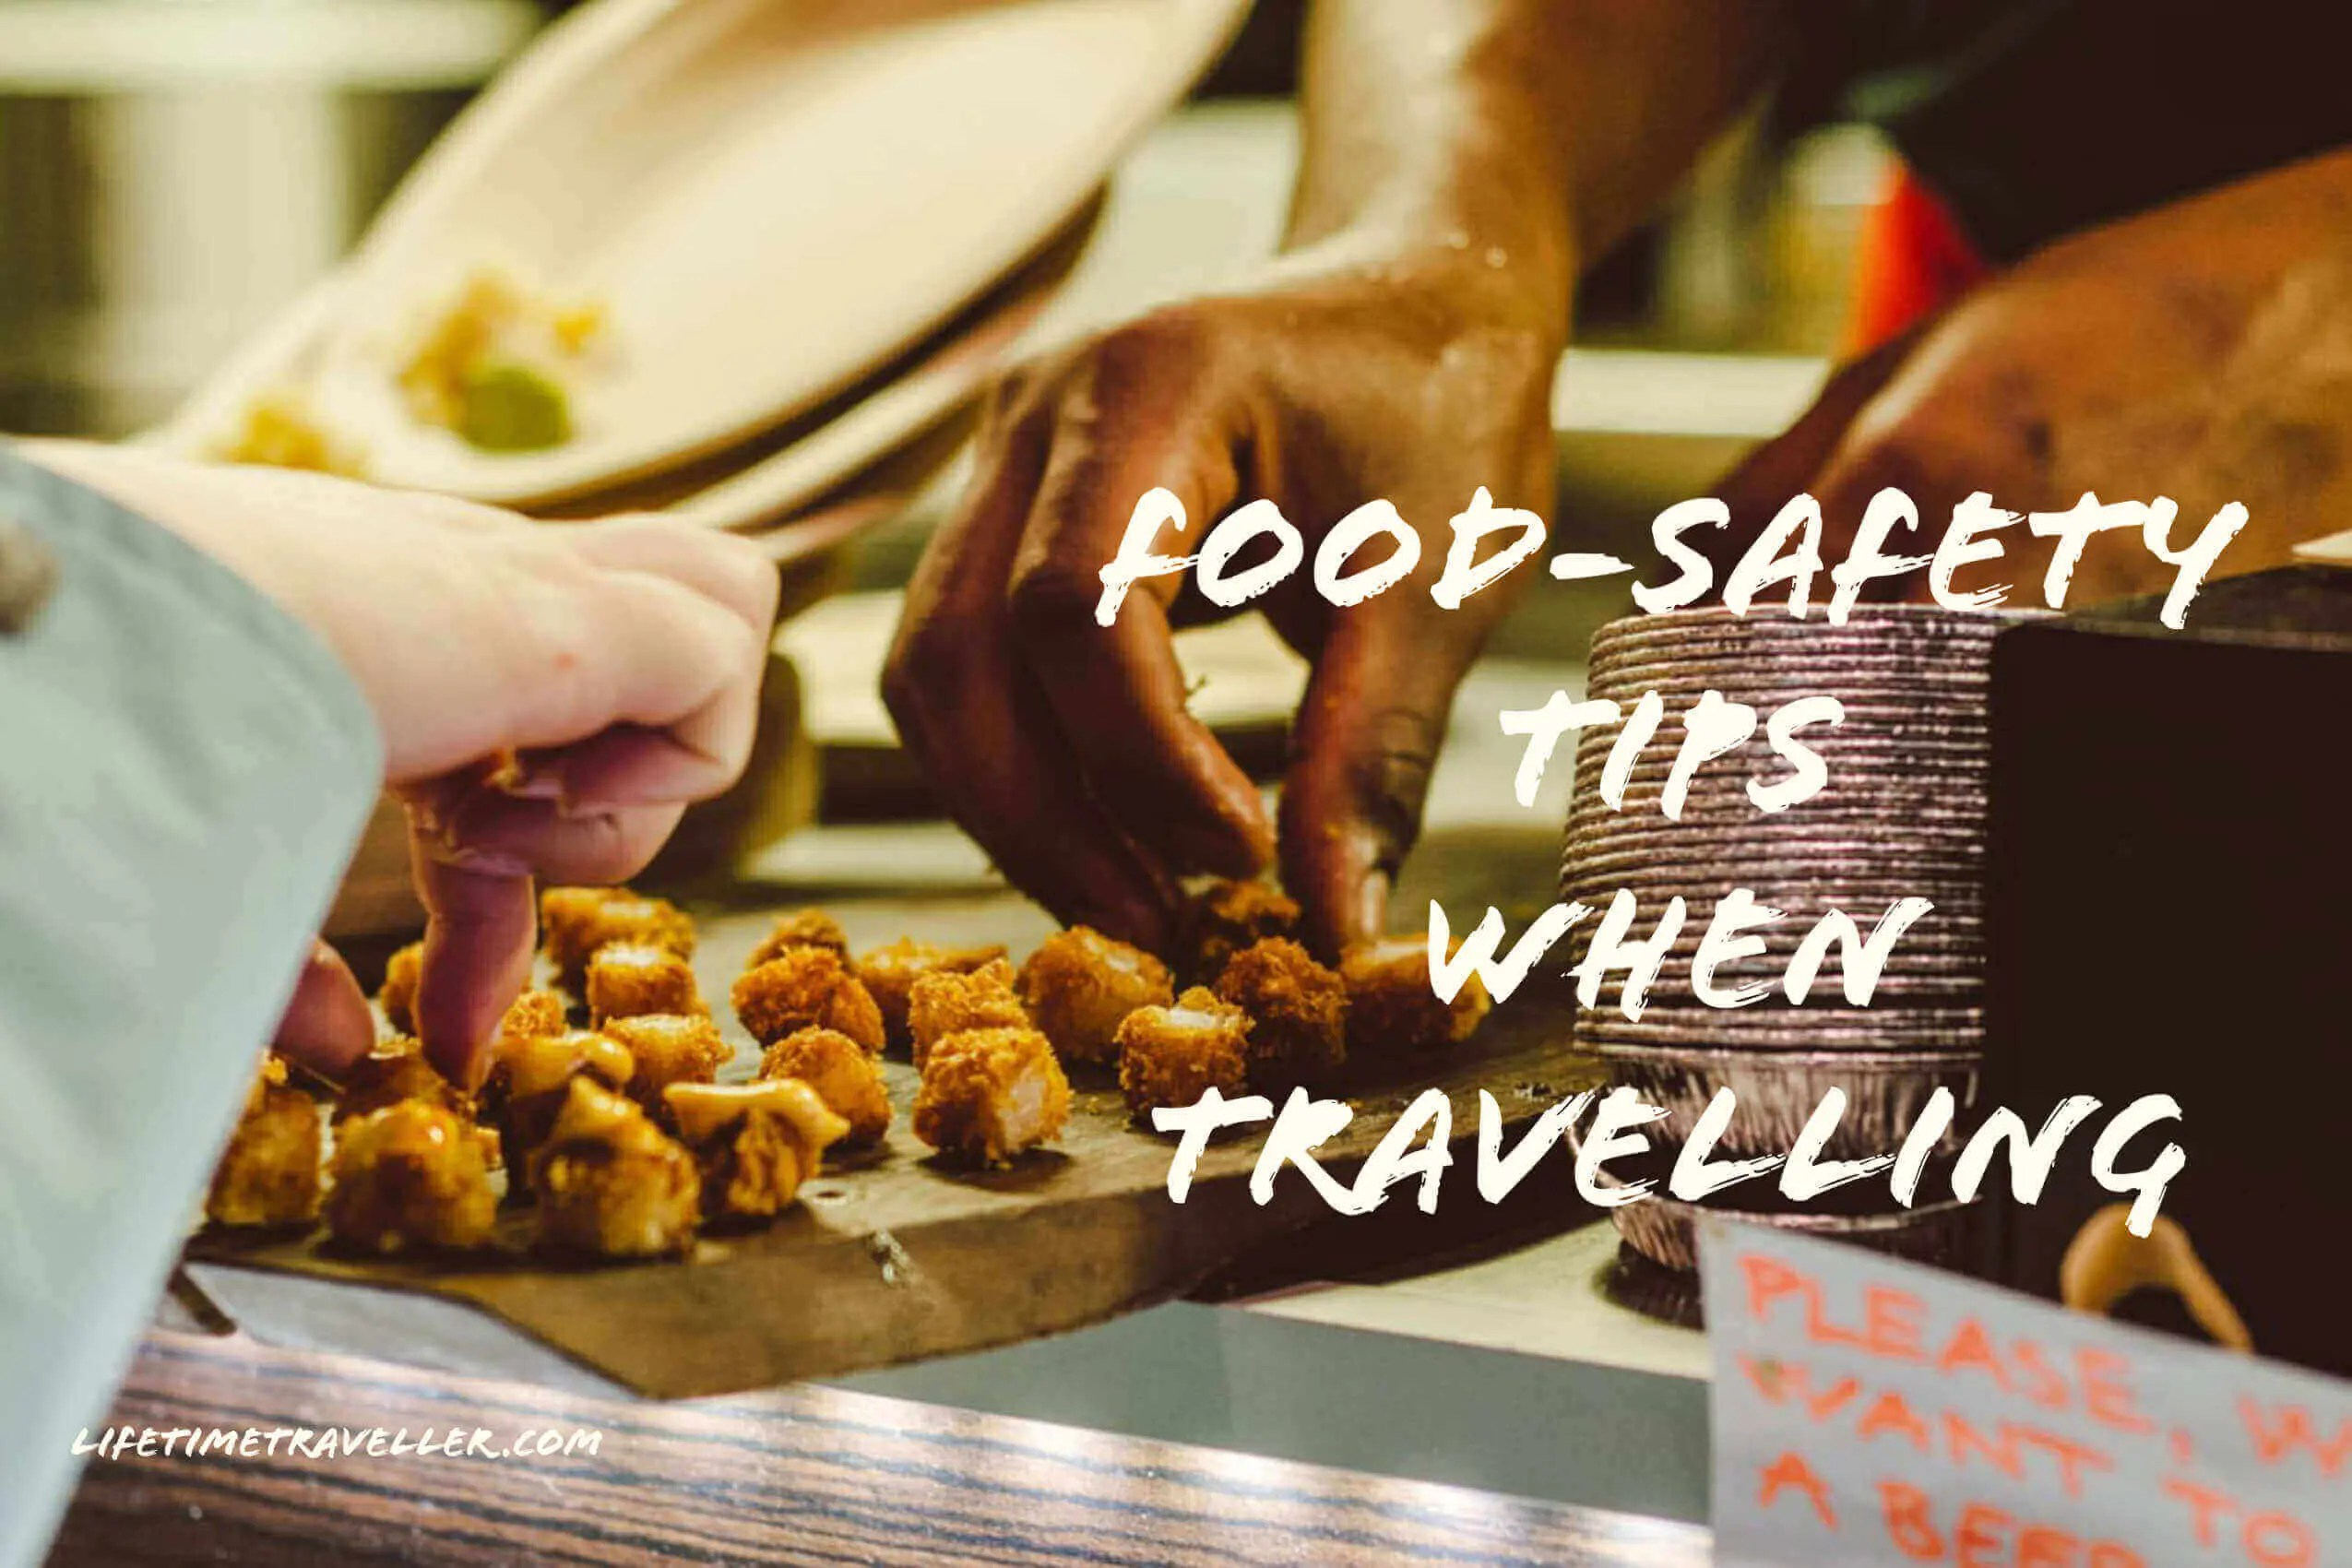 Food-Safety Tips When Travelling, Your Guide